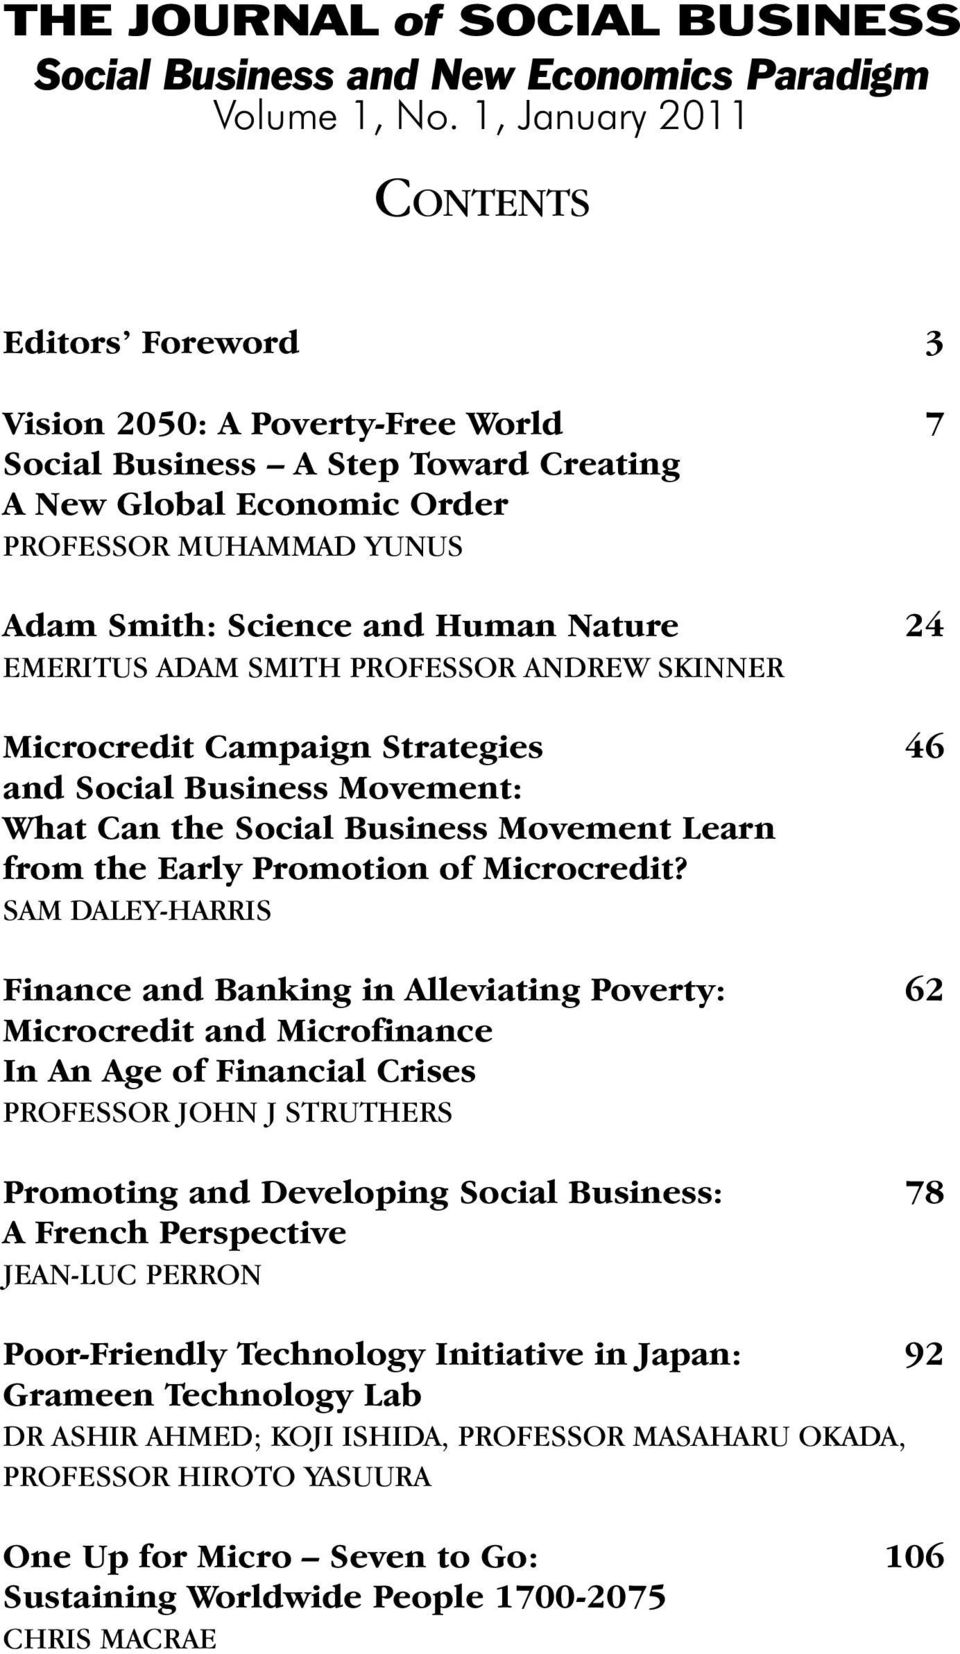 Human Nature 24 EMERITUS ADAM SMITH PROFESSOR ANDREW SKINNER Microcredit Campaign Strategies 46 and Social Business Movement: What Can the Social Business Movement Learn from the Early Promotion of